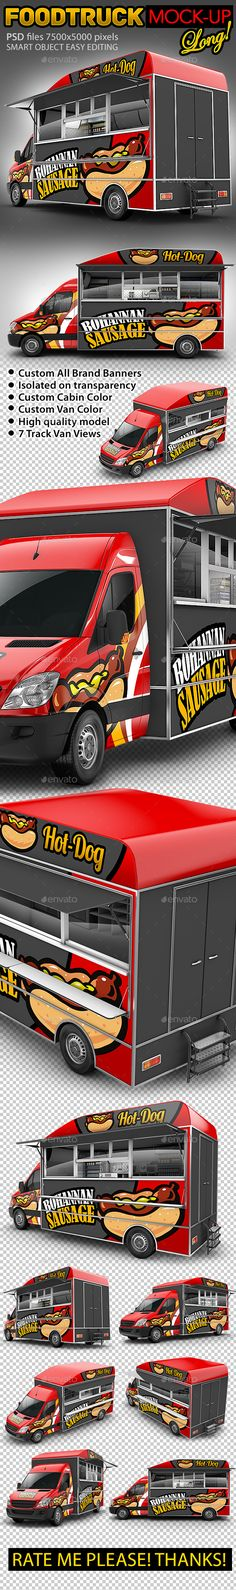 Food Truck HodDog MockUp. Van eatery mockup — Photoshop PSD #taco truck #minibus • Available here → https://graphicriver.net/item/food-truck-hoddog-mockup-van-eatery-mockup/17462490?ref=pxcr